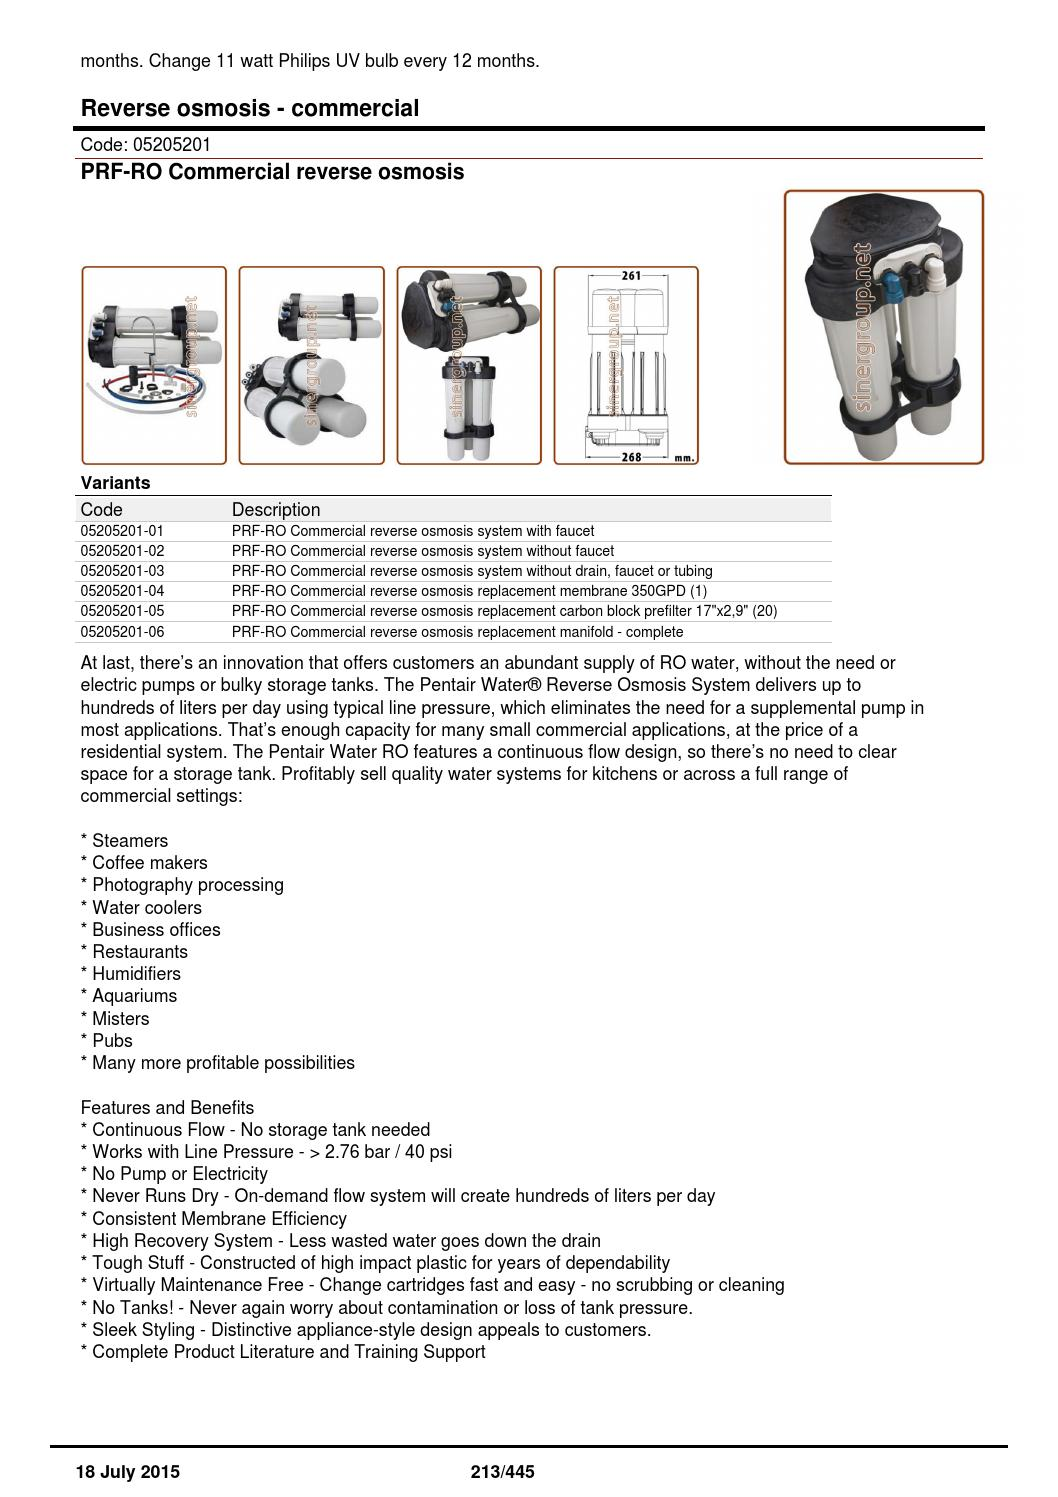 18 July 2015 Sinergroup Products Catalog Water Softeners